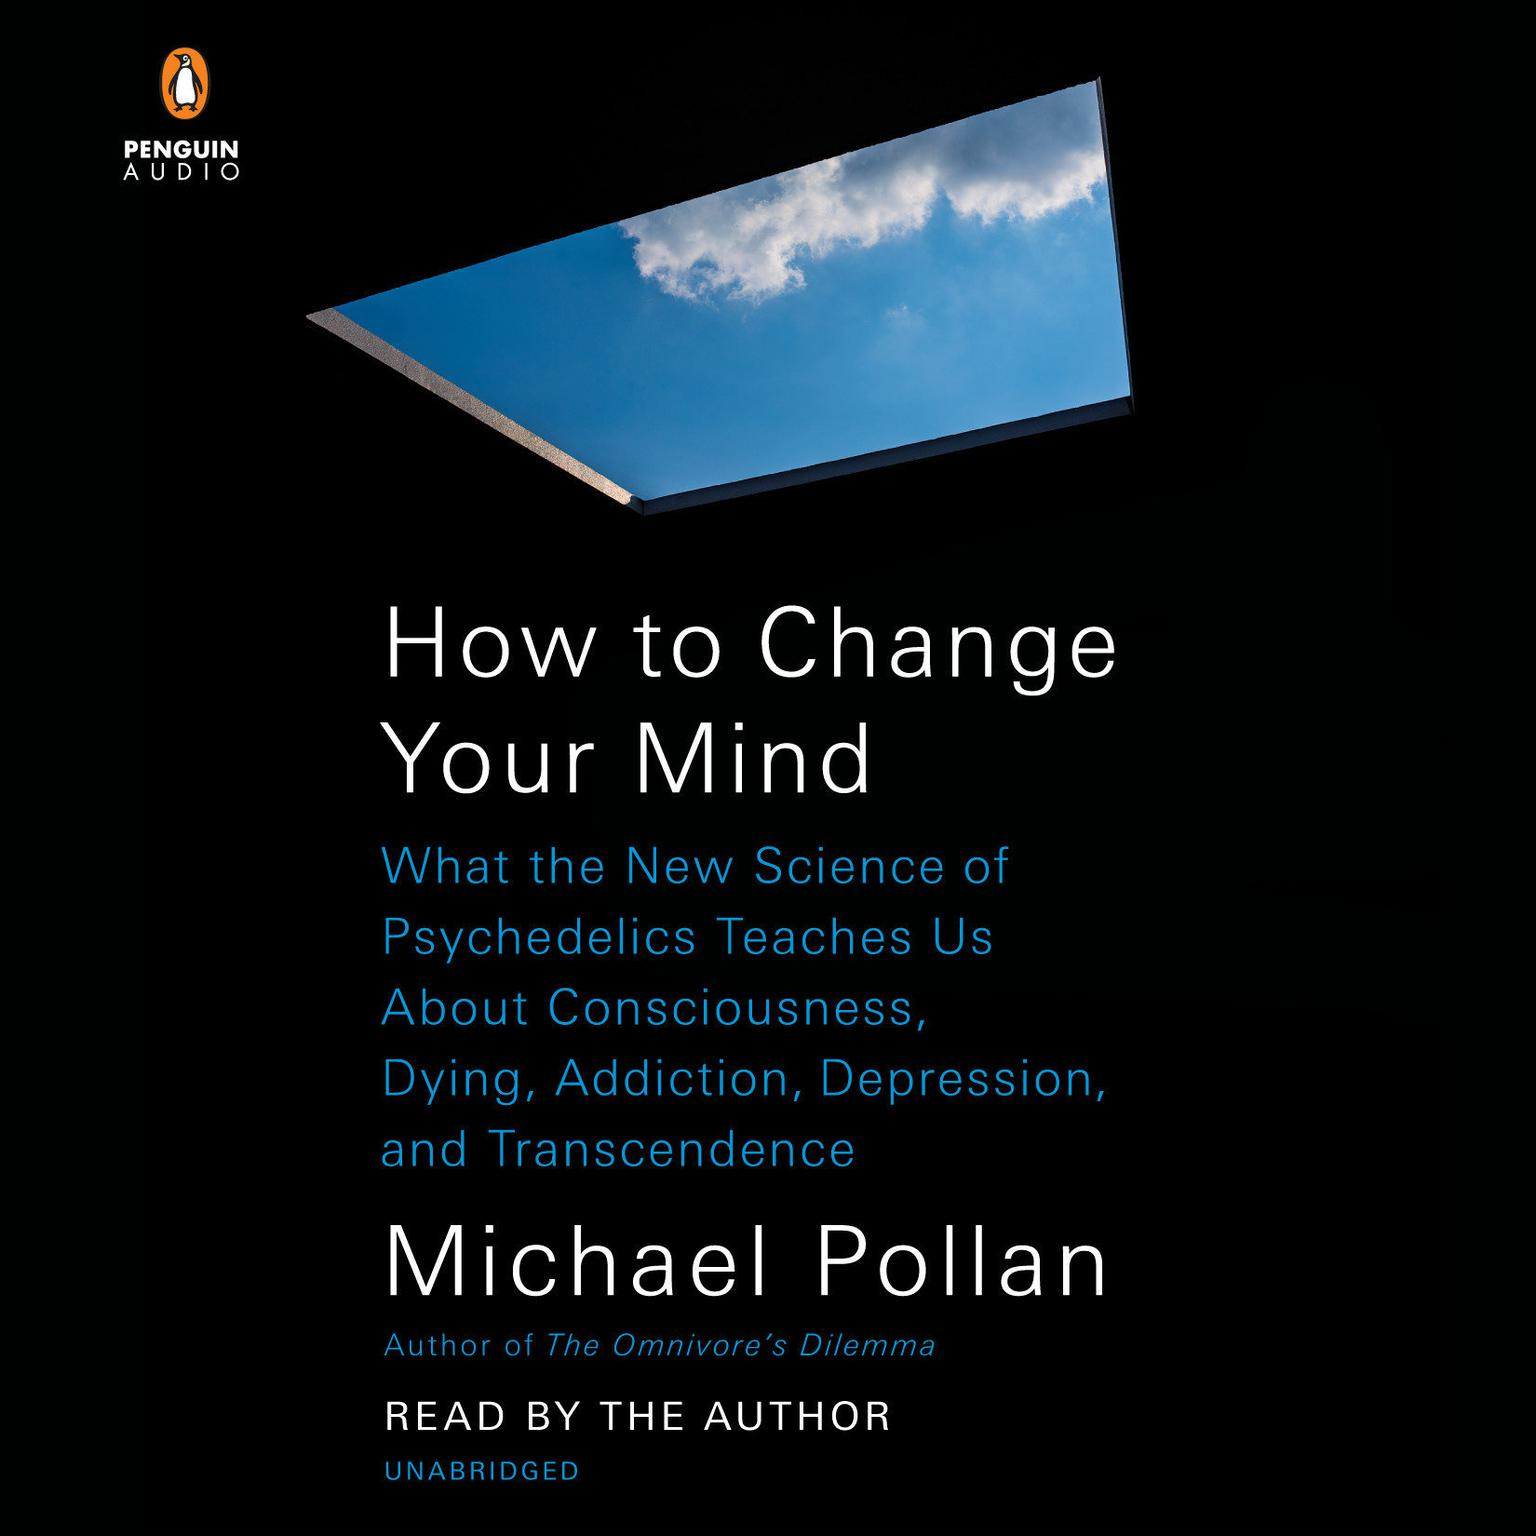 How to Change Your Mind: What the New Science of Psychedelics Teaches Us About Consciousness, Dying, Addiction, Depression, and Transcendence Audiobook, by Michael Pollan